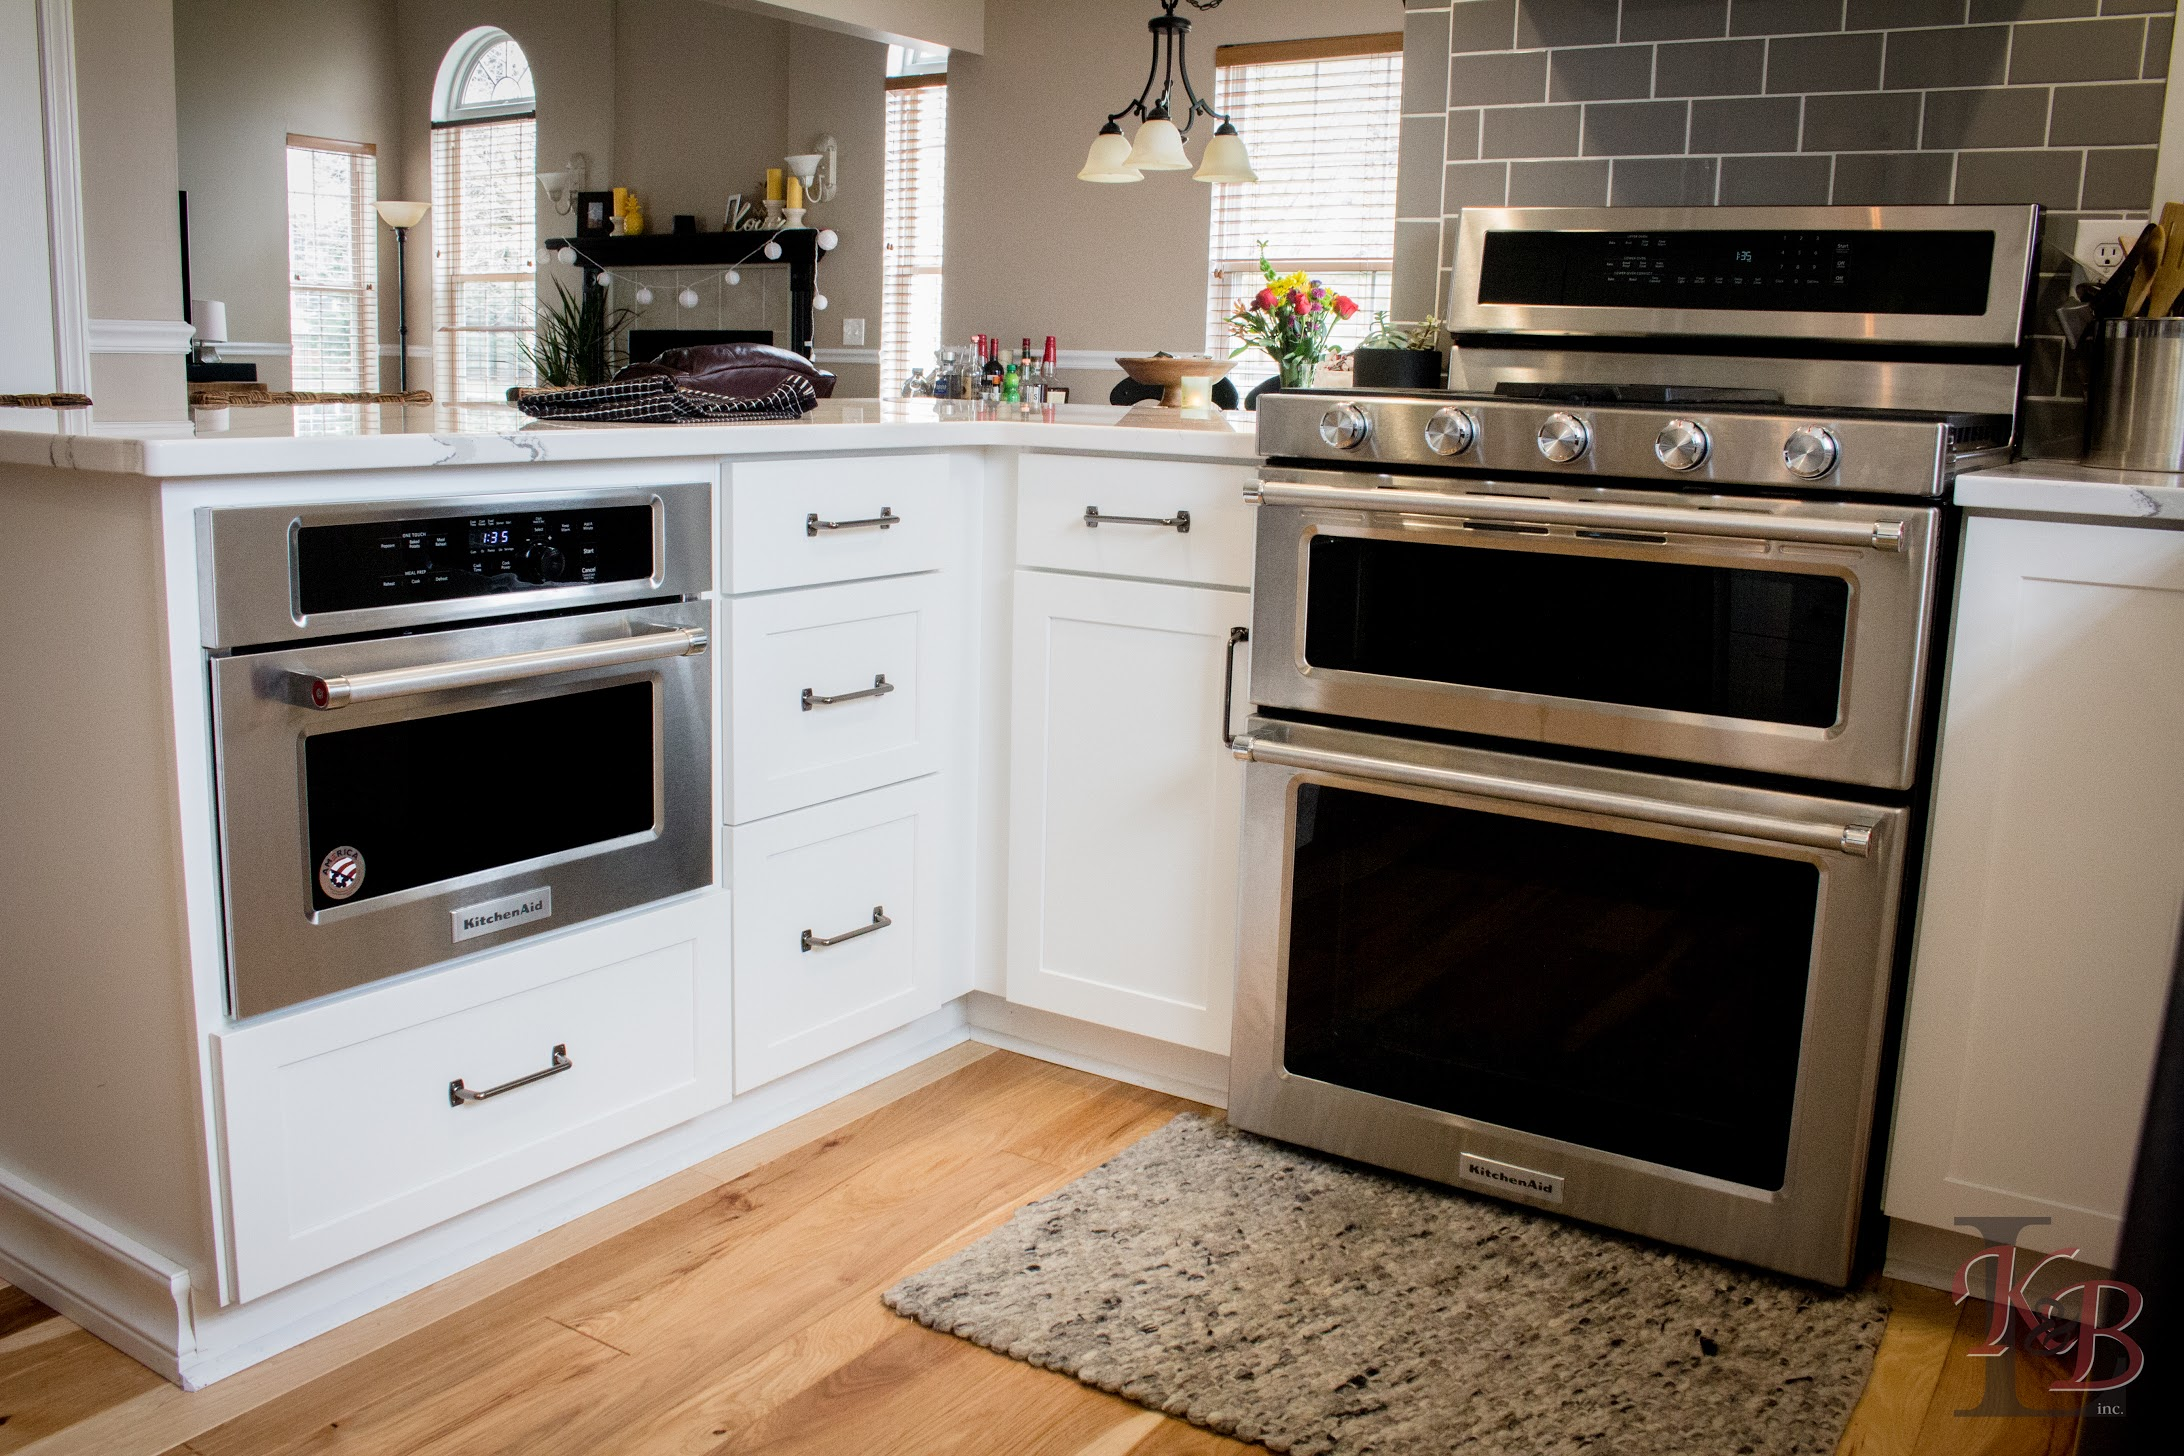 Dual/Warming Ovens